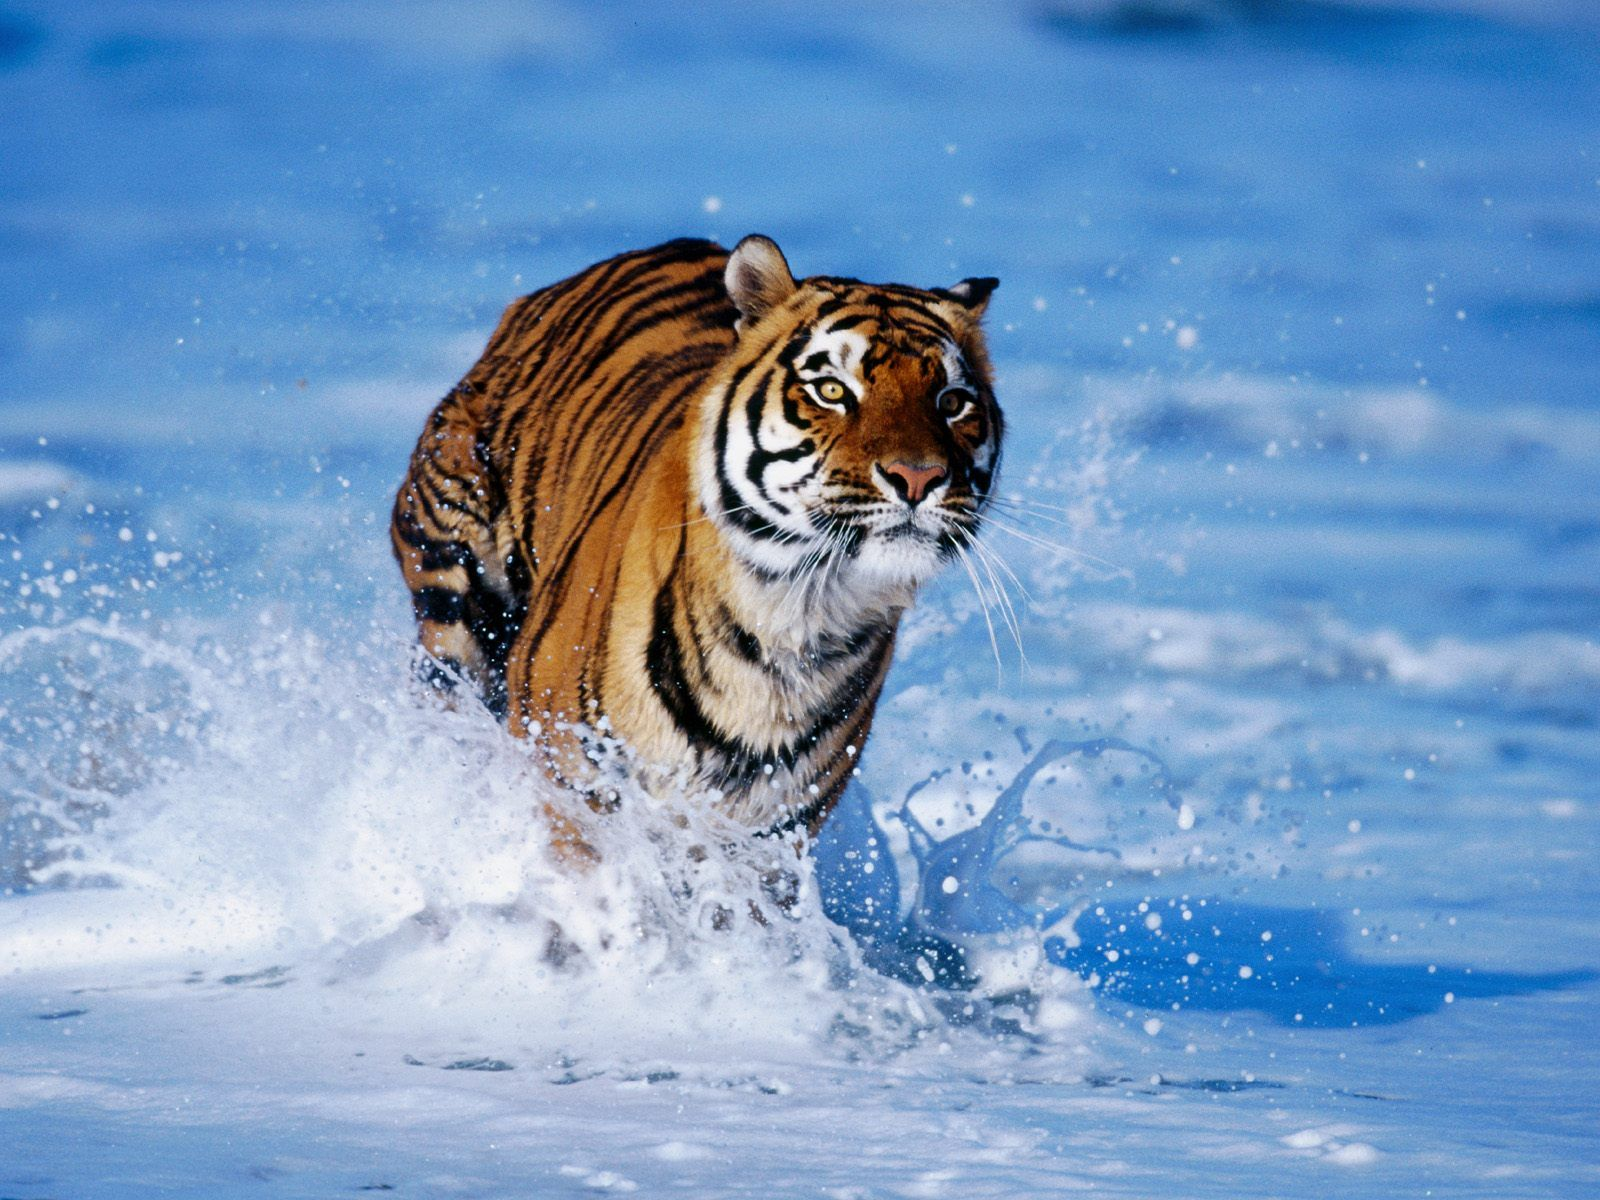 click here to download in hd format >> tiger in water wallpapers